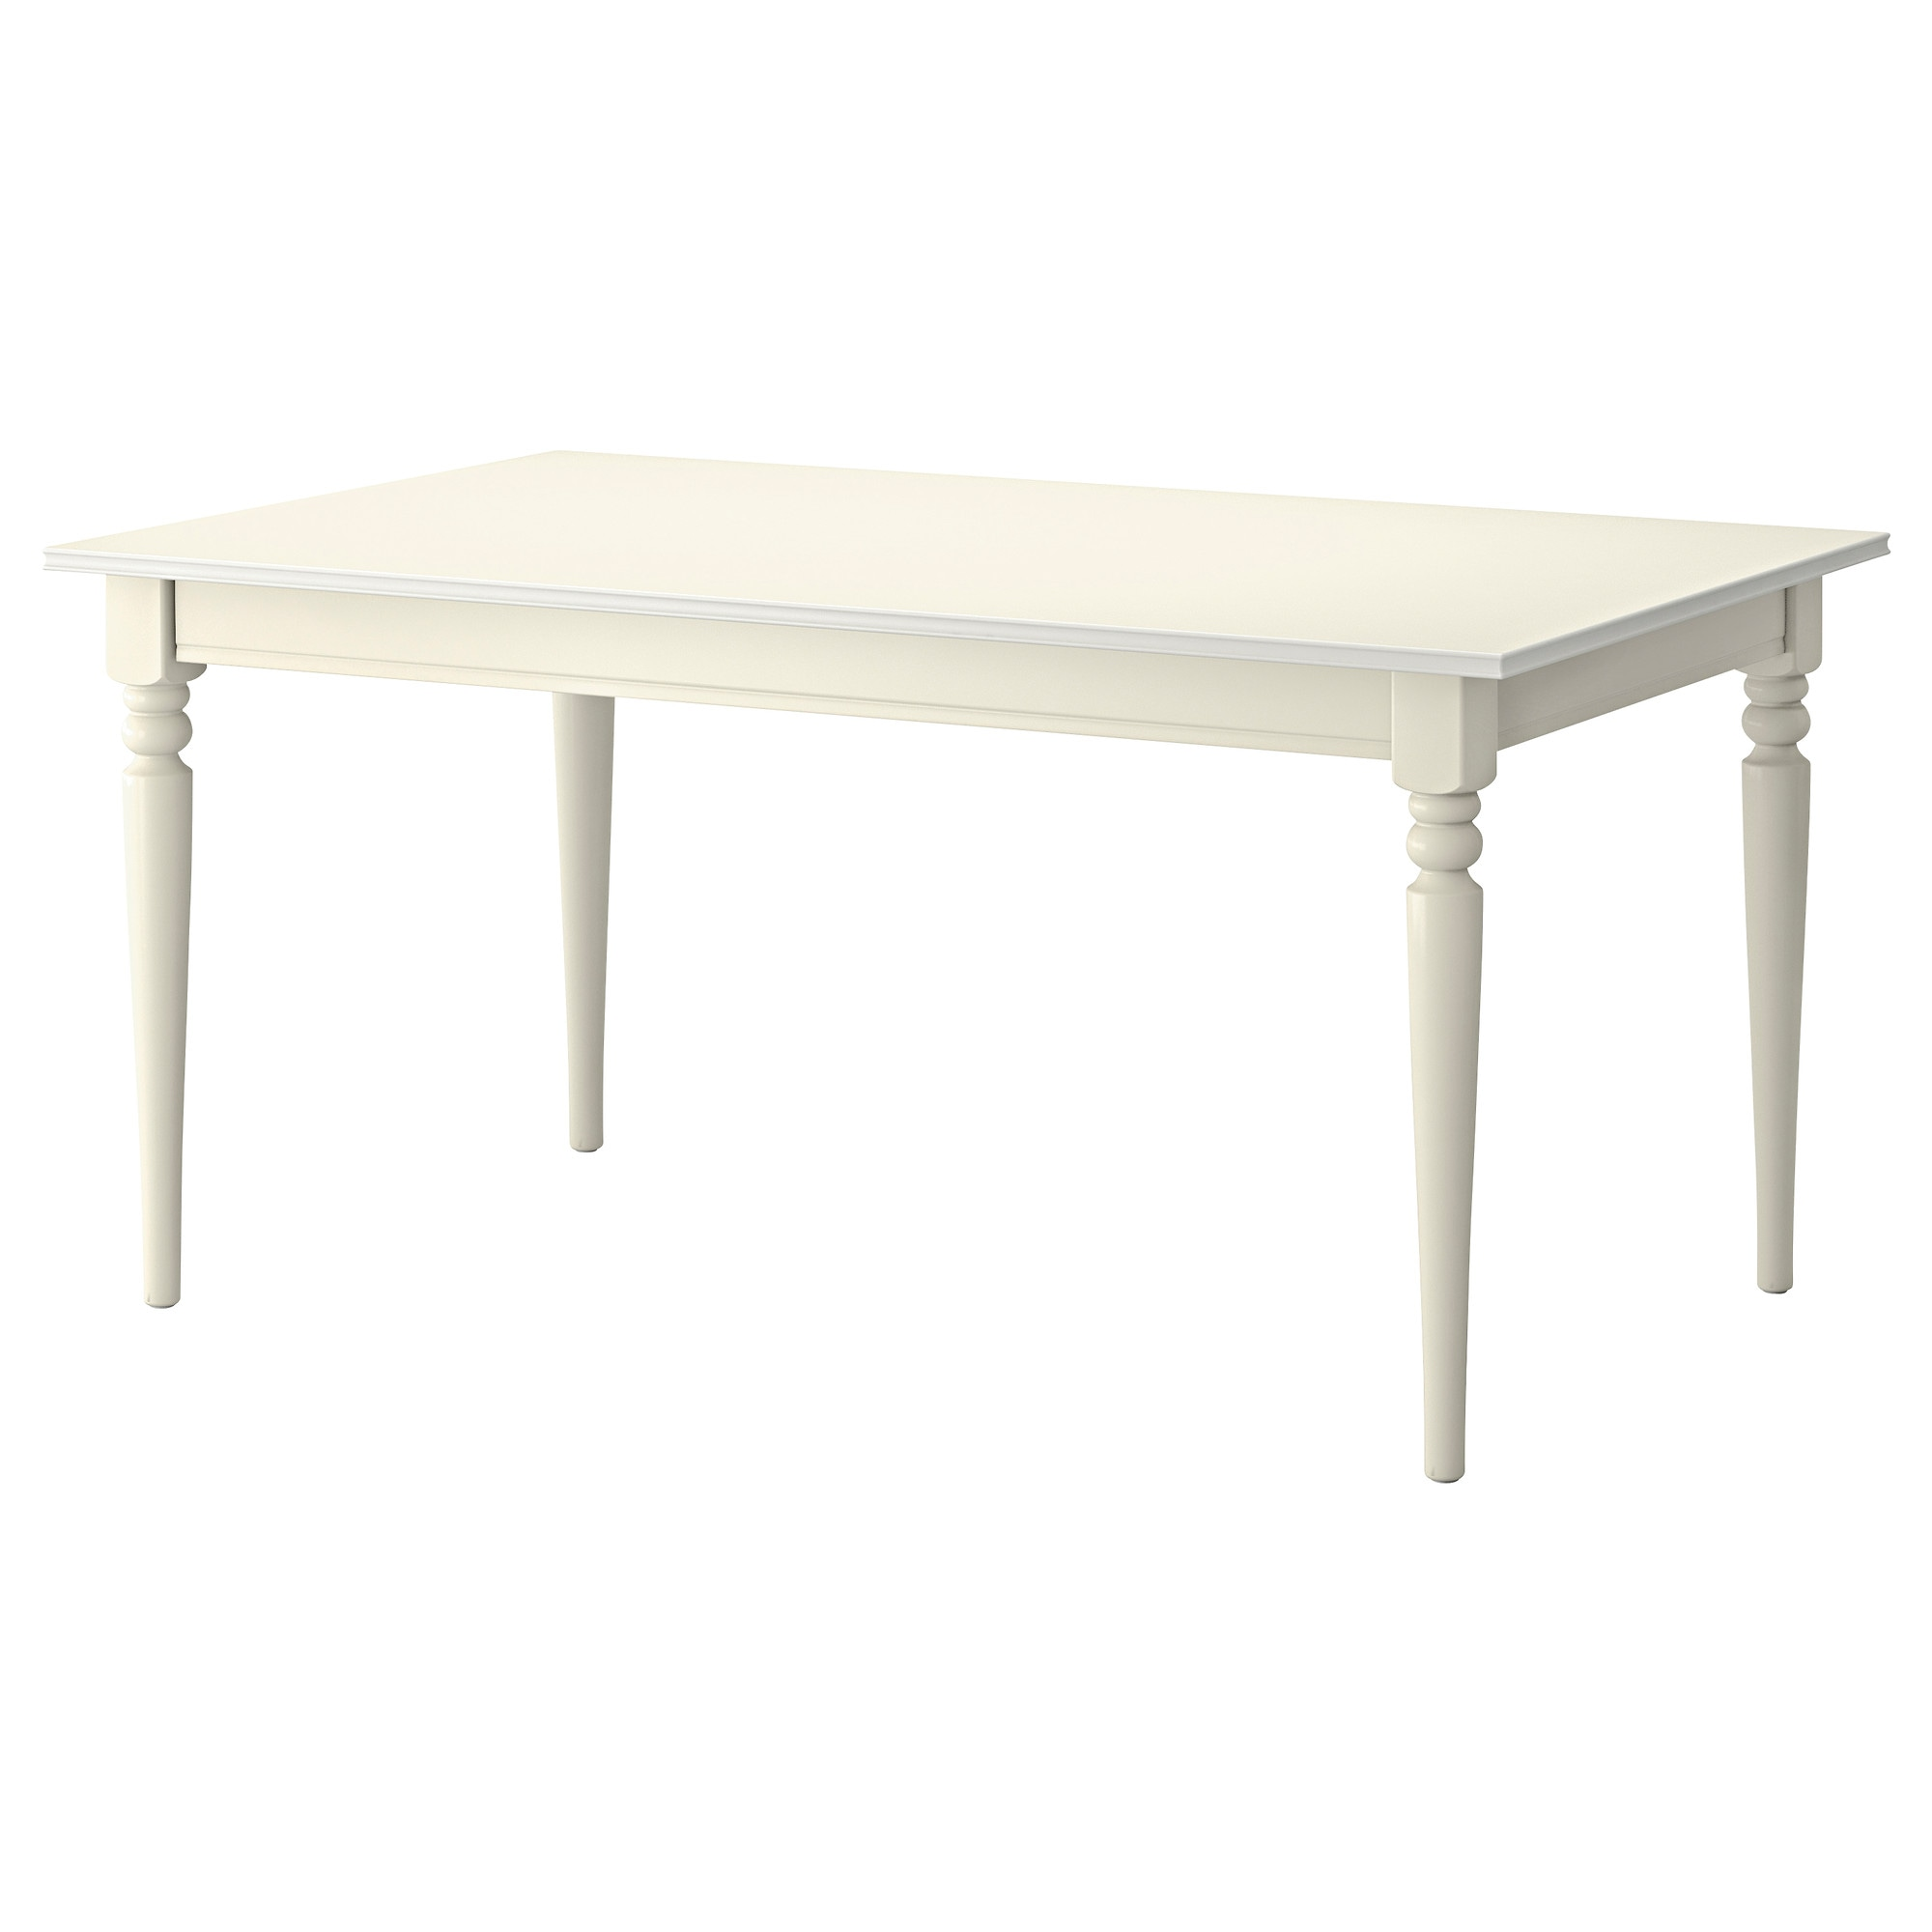 INGATORP extendable table, white Length: 61